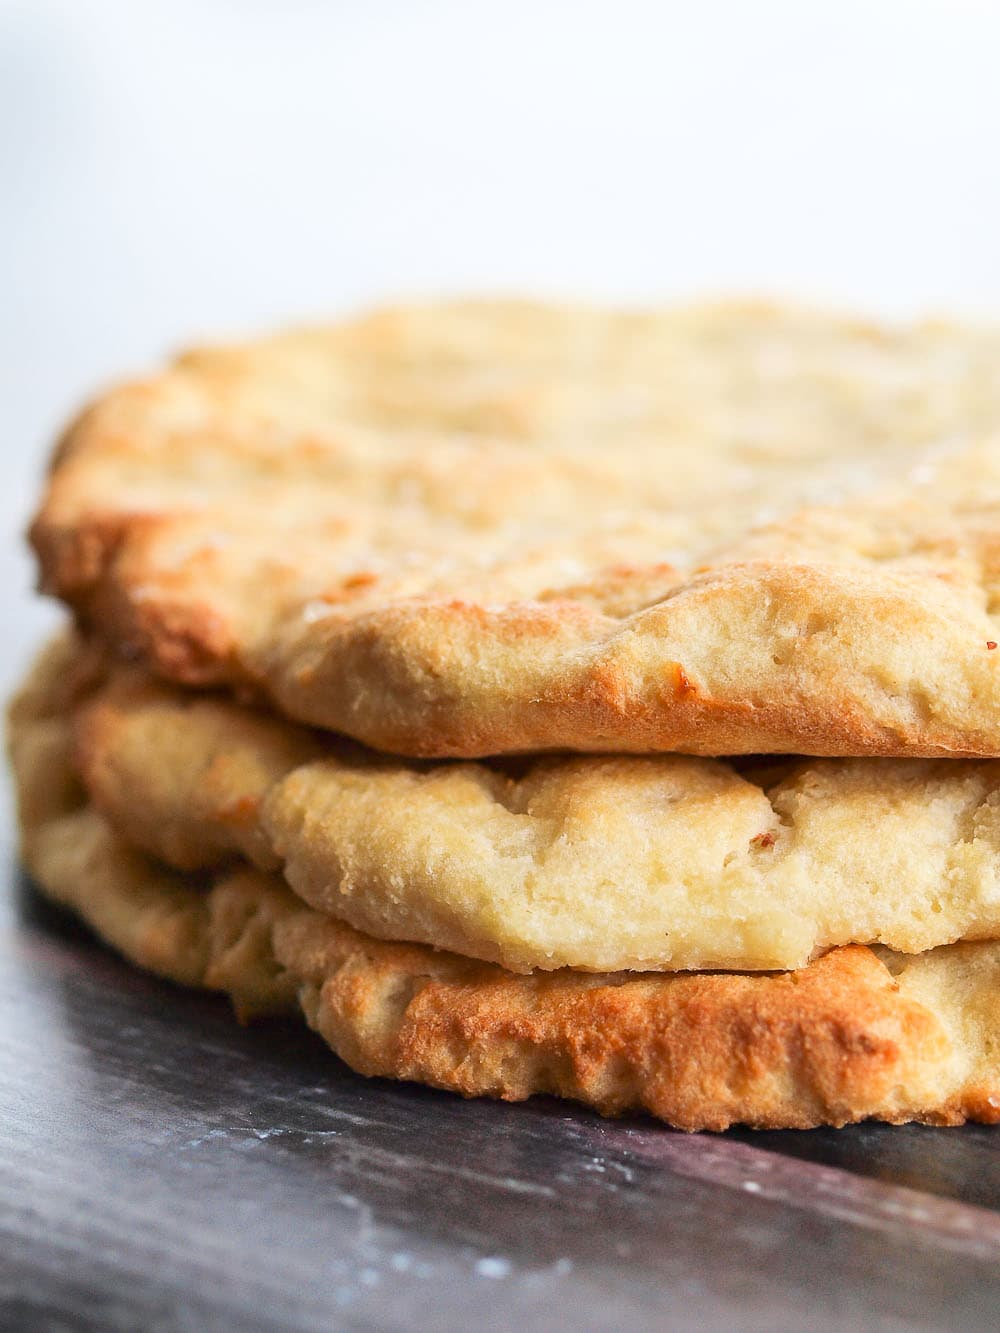 You are just 25 minutes away from the BEST and EASIEST gluten-free flatbread of